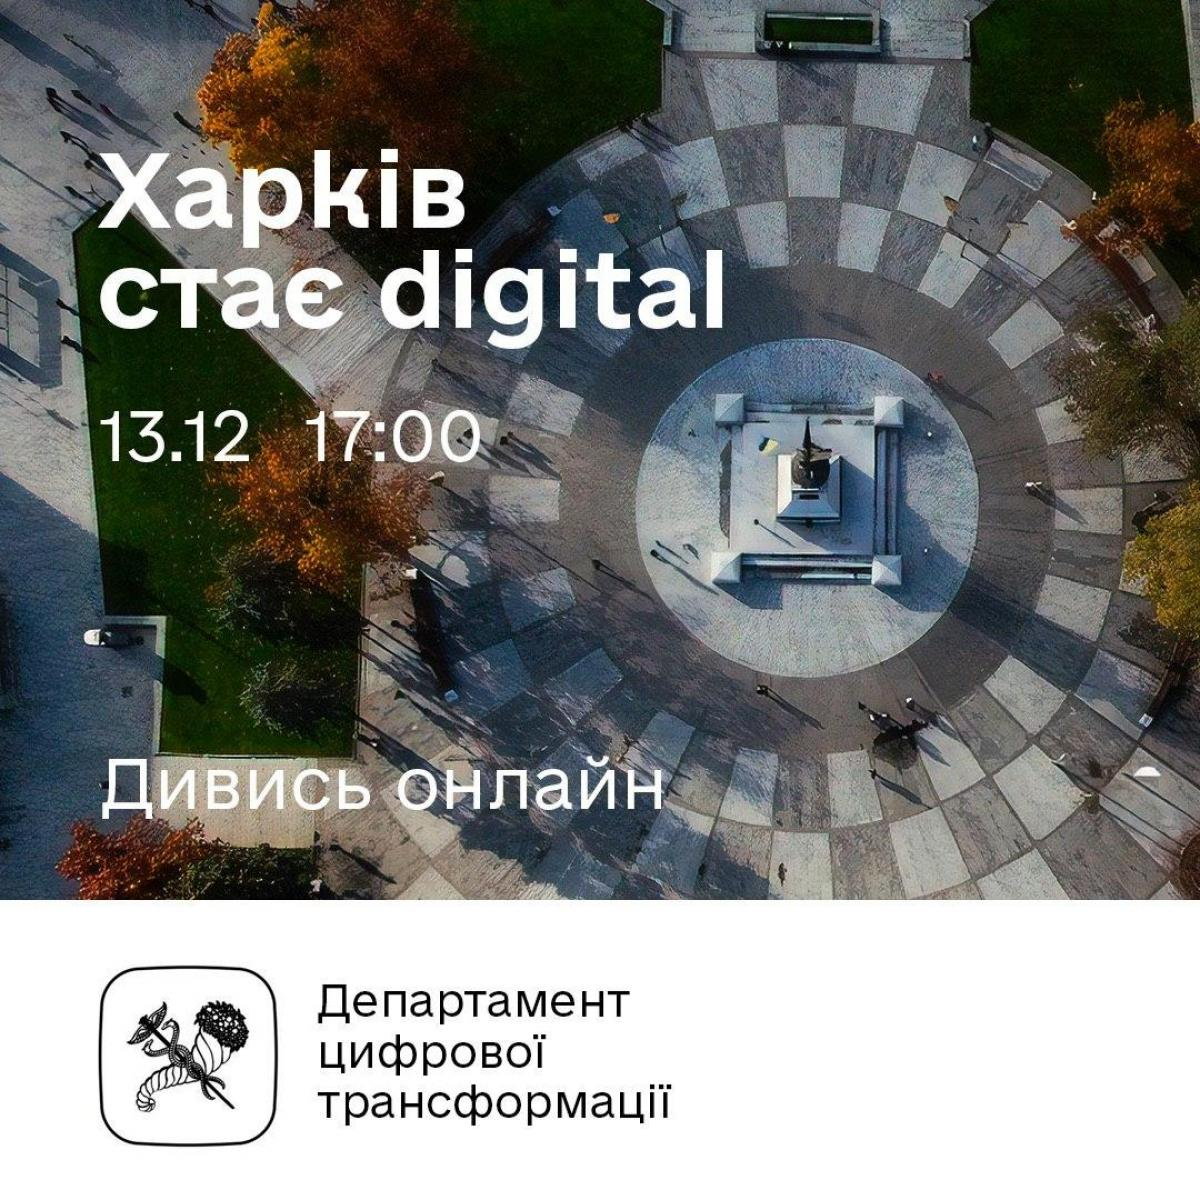 Presentation event of the Department of Digital Transformation of the Kharkiv City Council